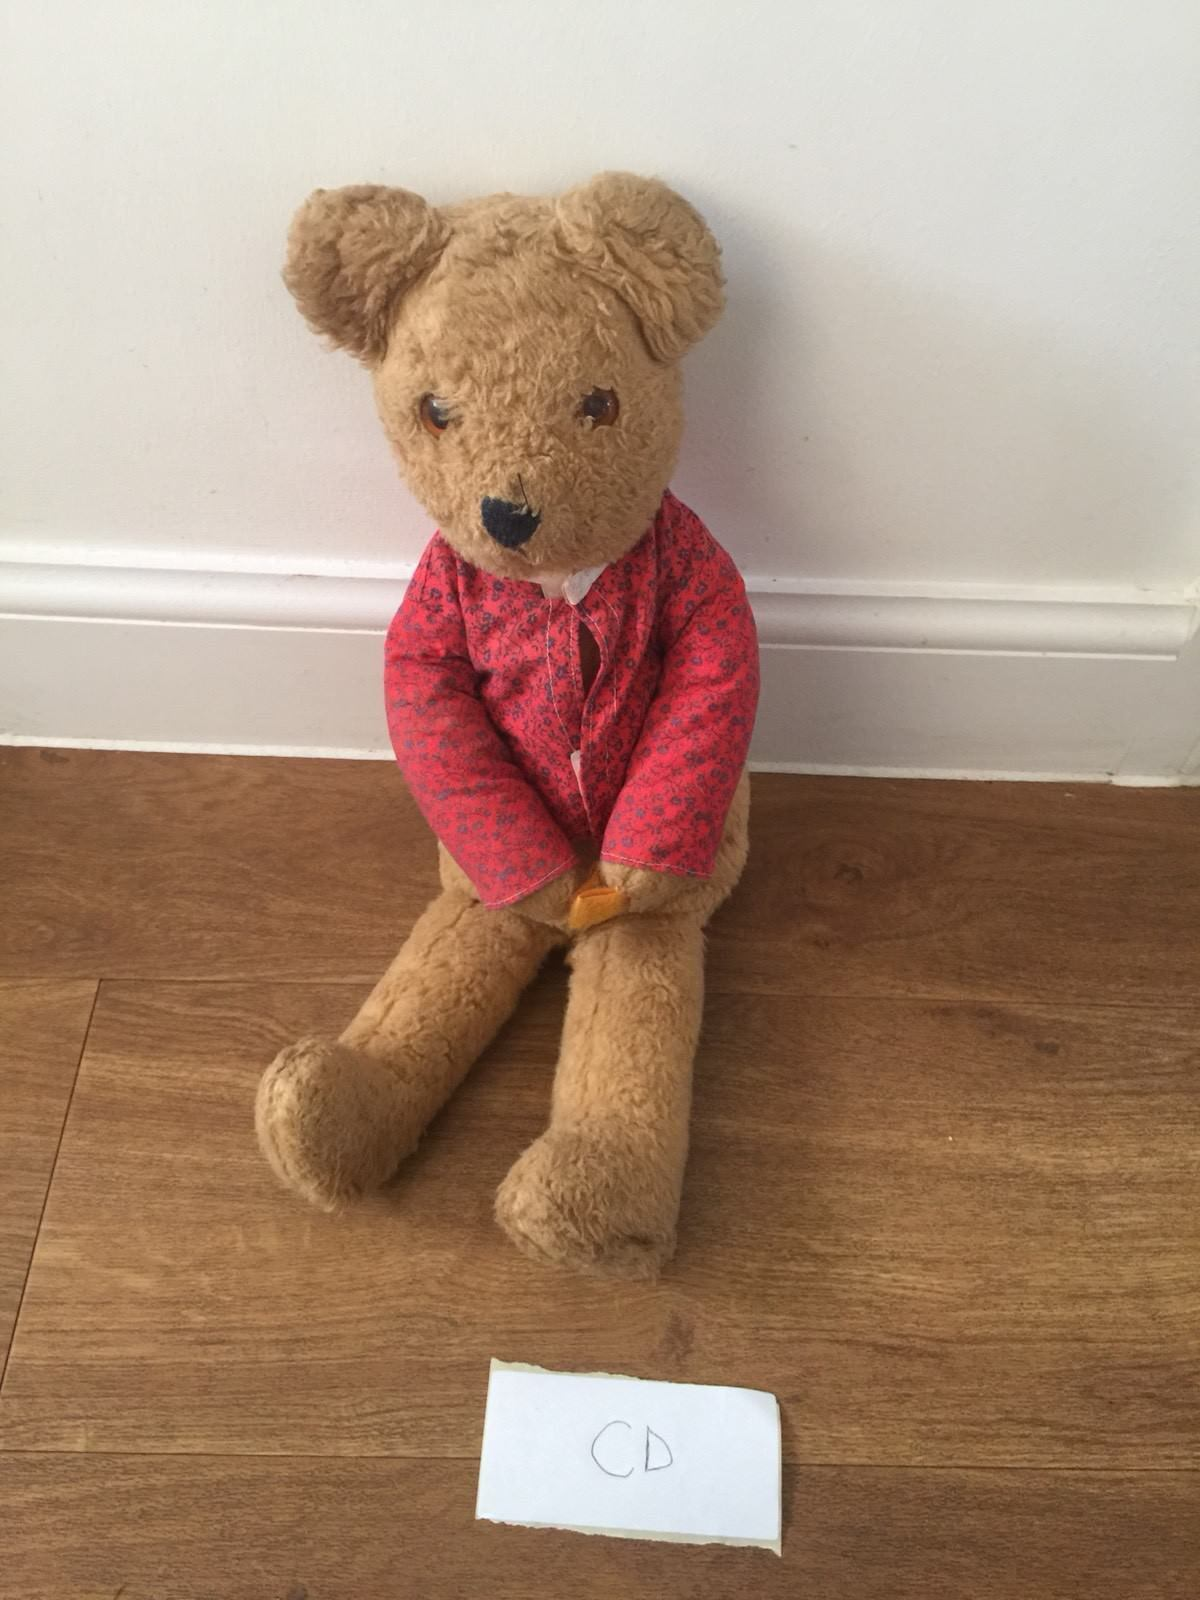 Vintage 1970s Alresford Crafts Teddy Soft Plush Teddy Crafts Bear Clothed Toy 70s England b74ab0